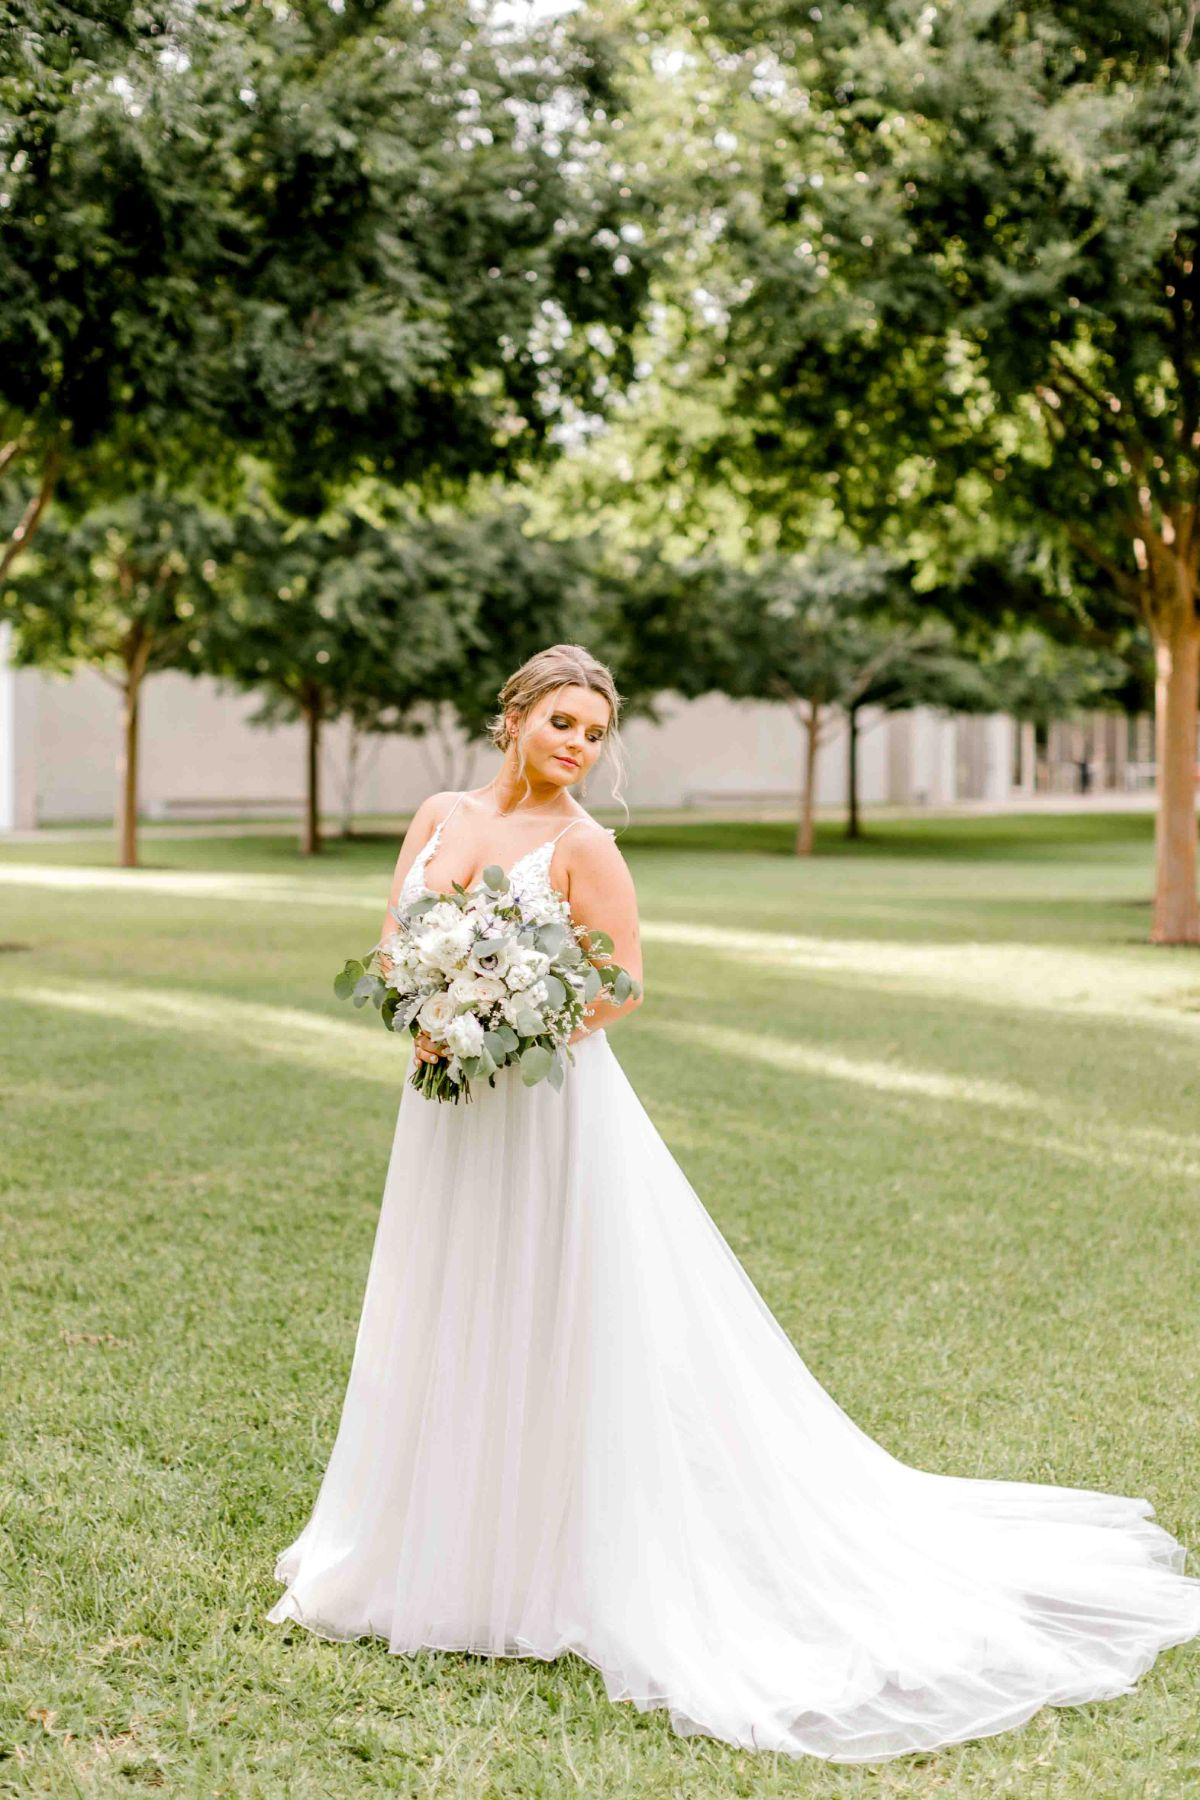 sarah-bridals-fort-worth-wedding-photographer-09.jpg